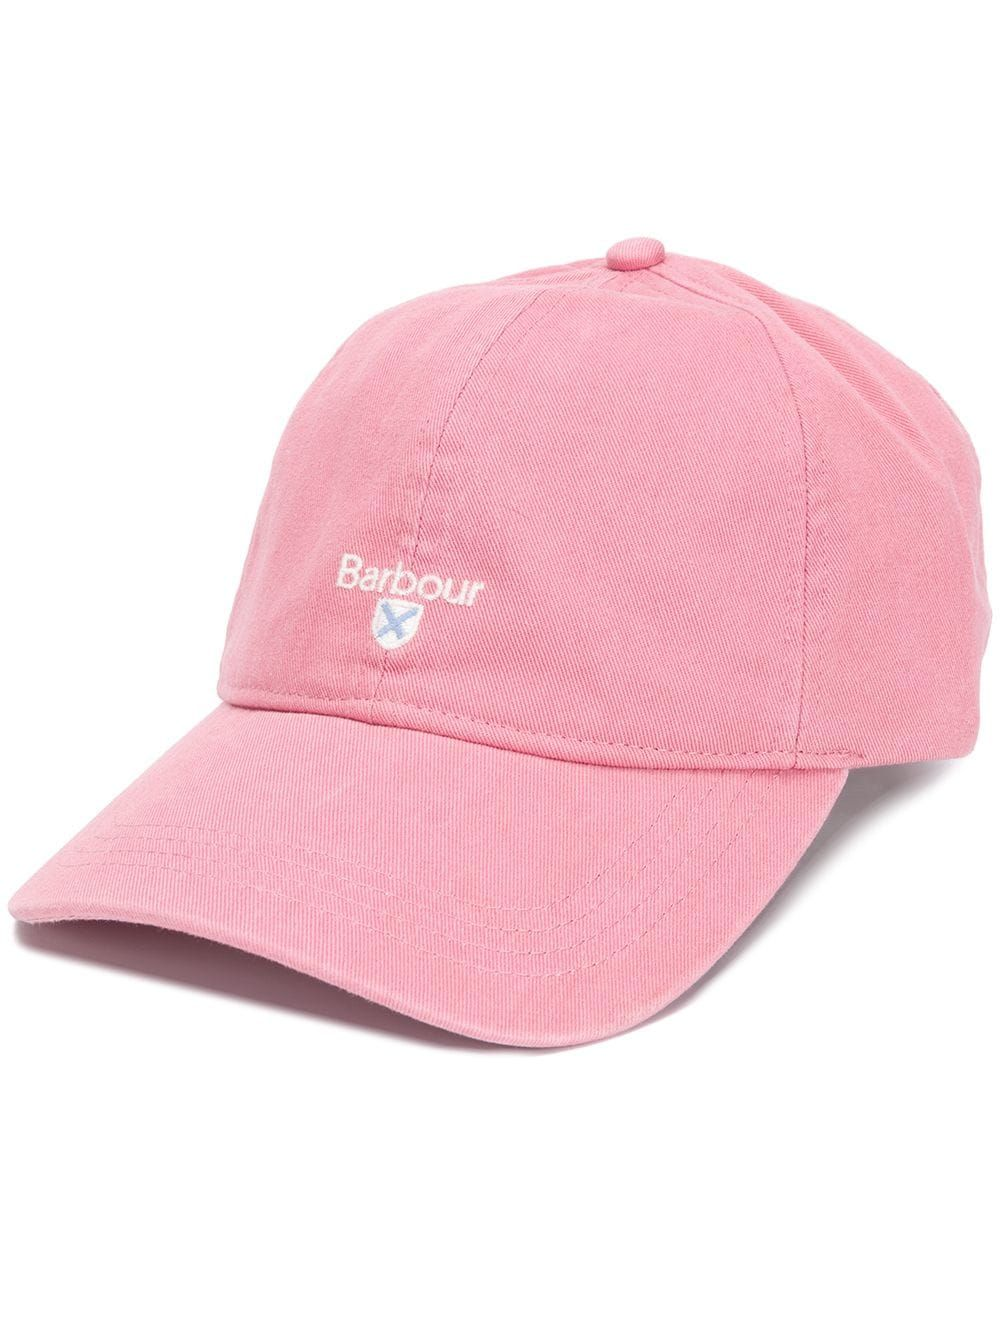 440f9030 BARBOUR BARBOUR CASCADE SPORTS CAP - PINK. #barbour | Barbour ...